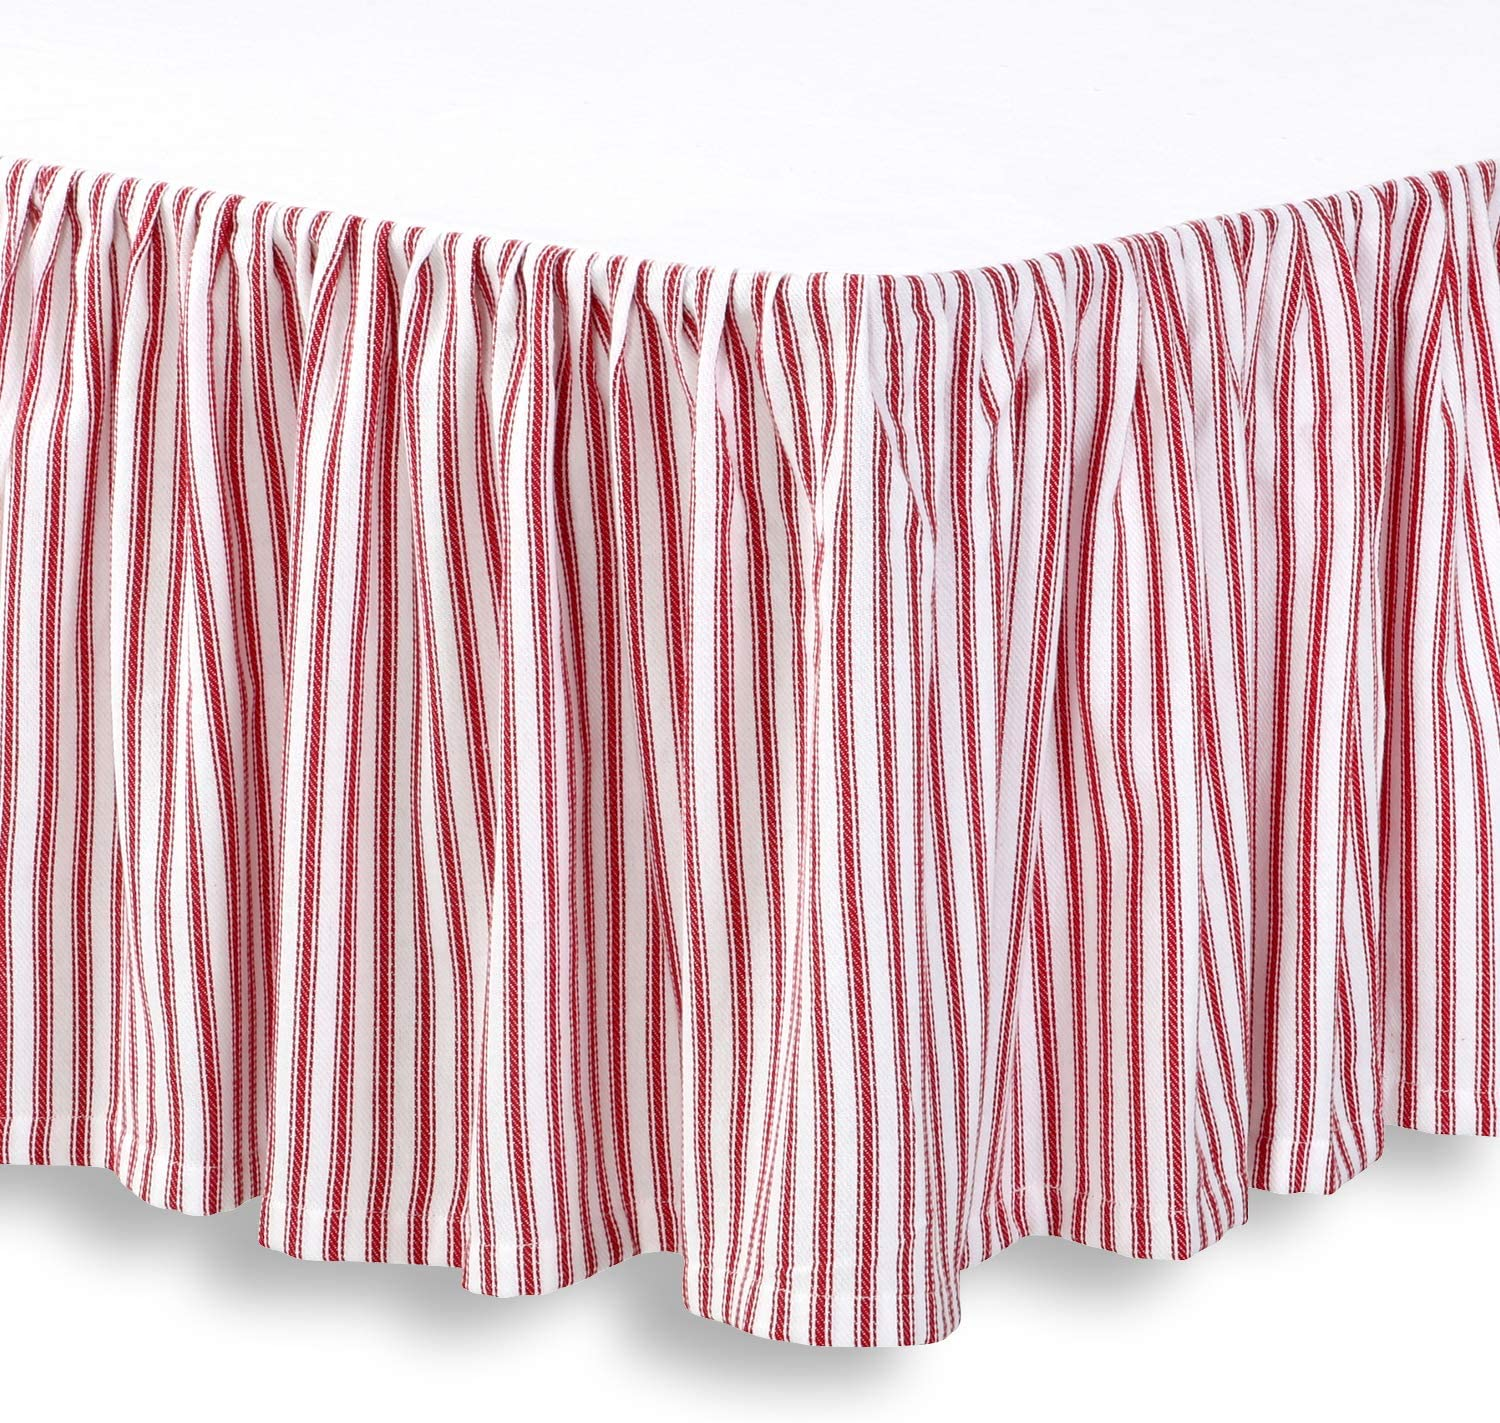 Sateen Stripe Tailored Bed Skirt 300 Thread Count FAST FREE HOLIDAY SHIPPING